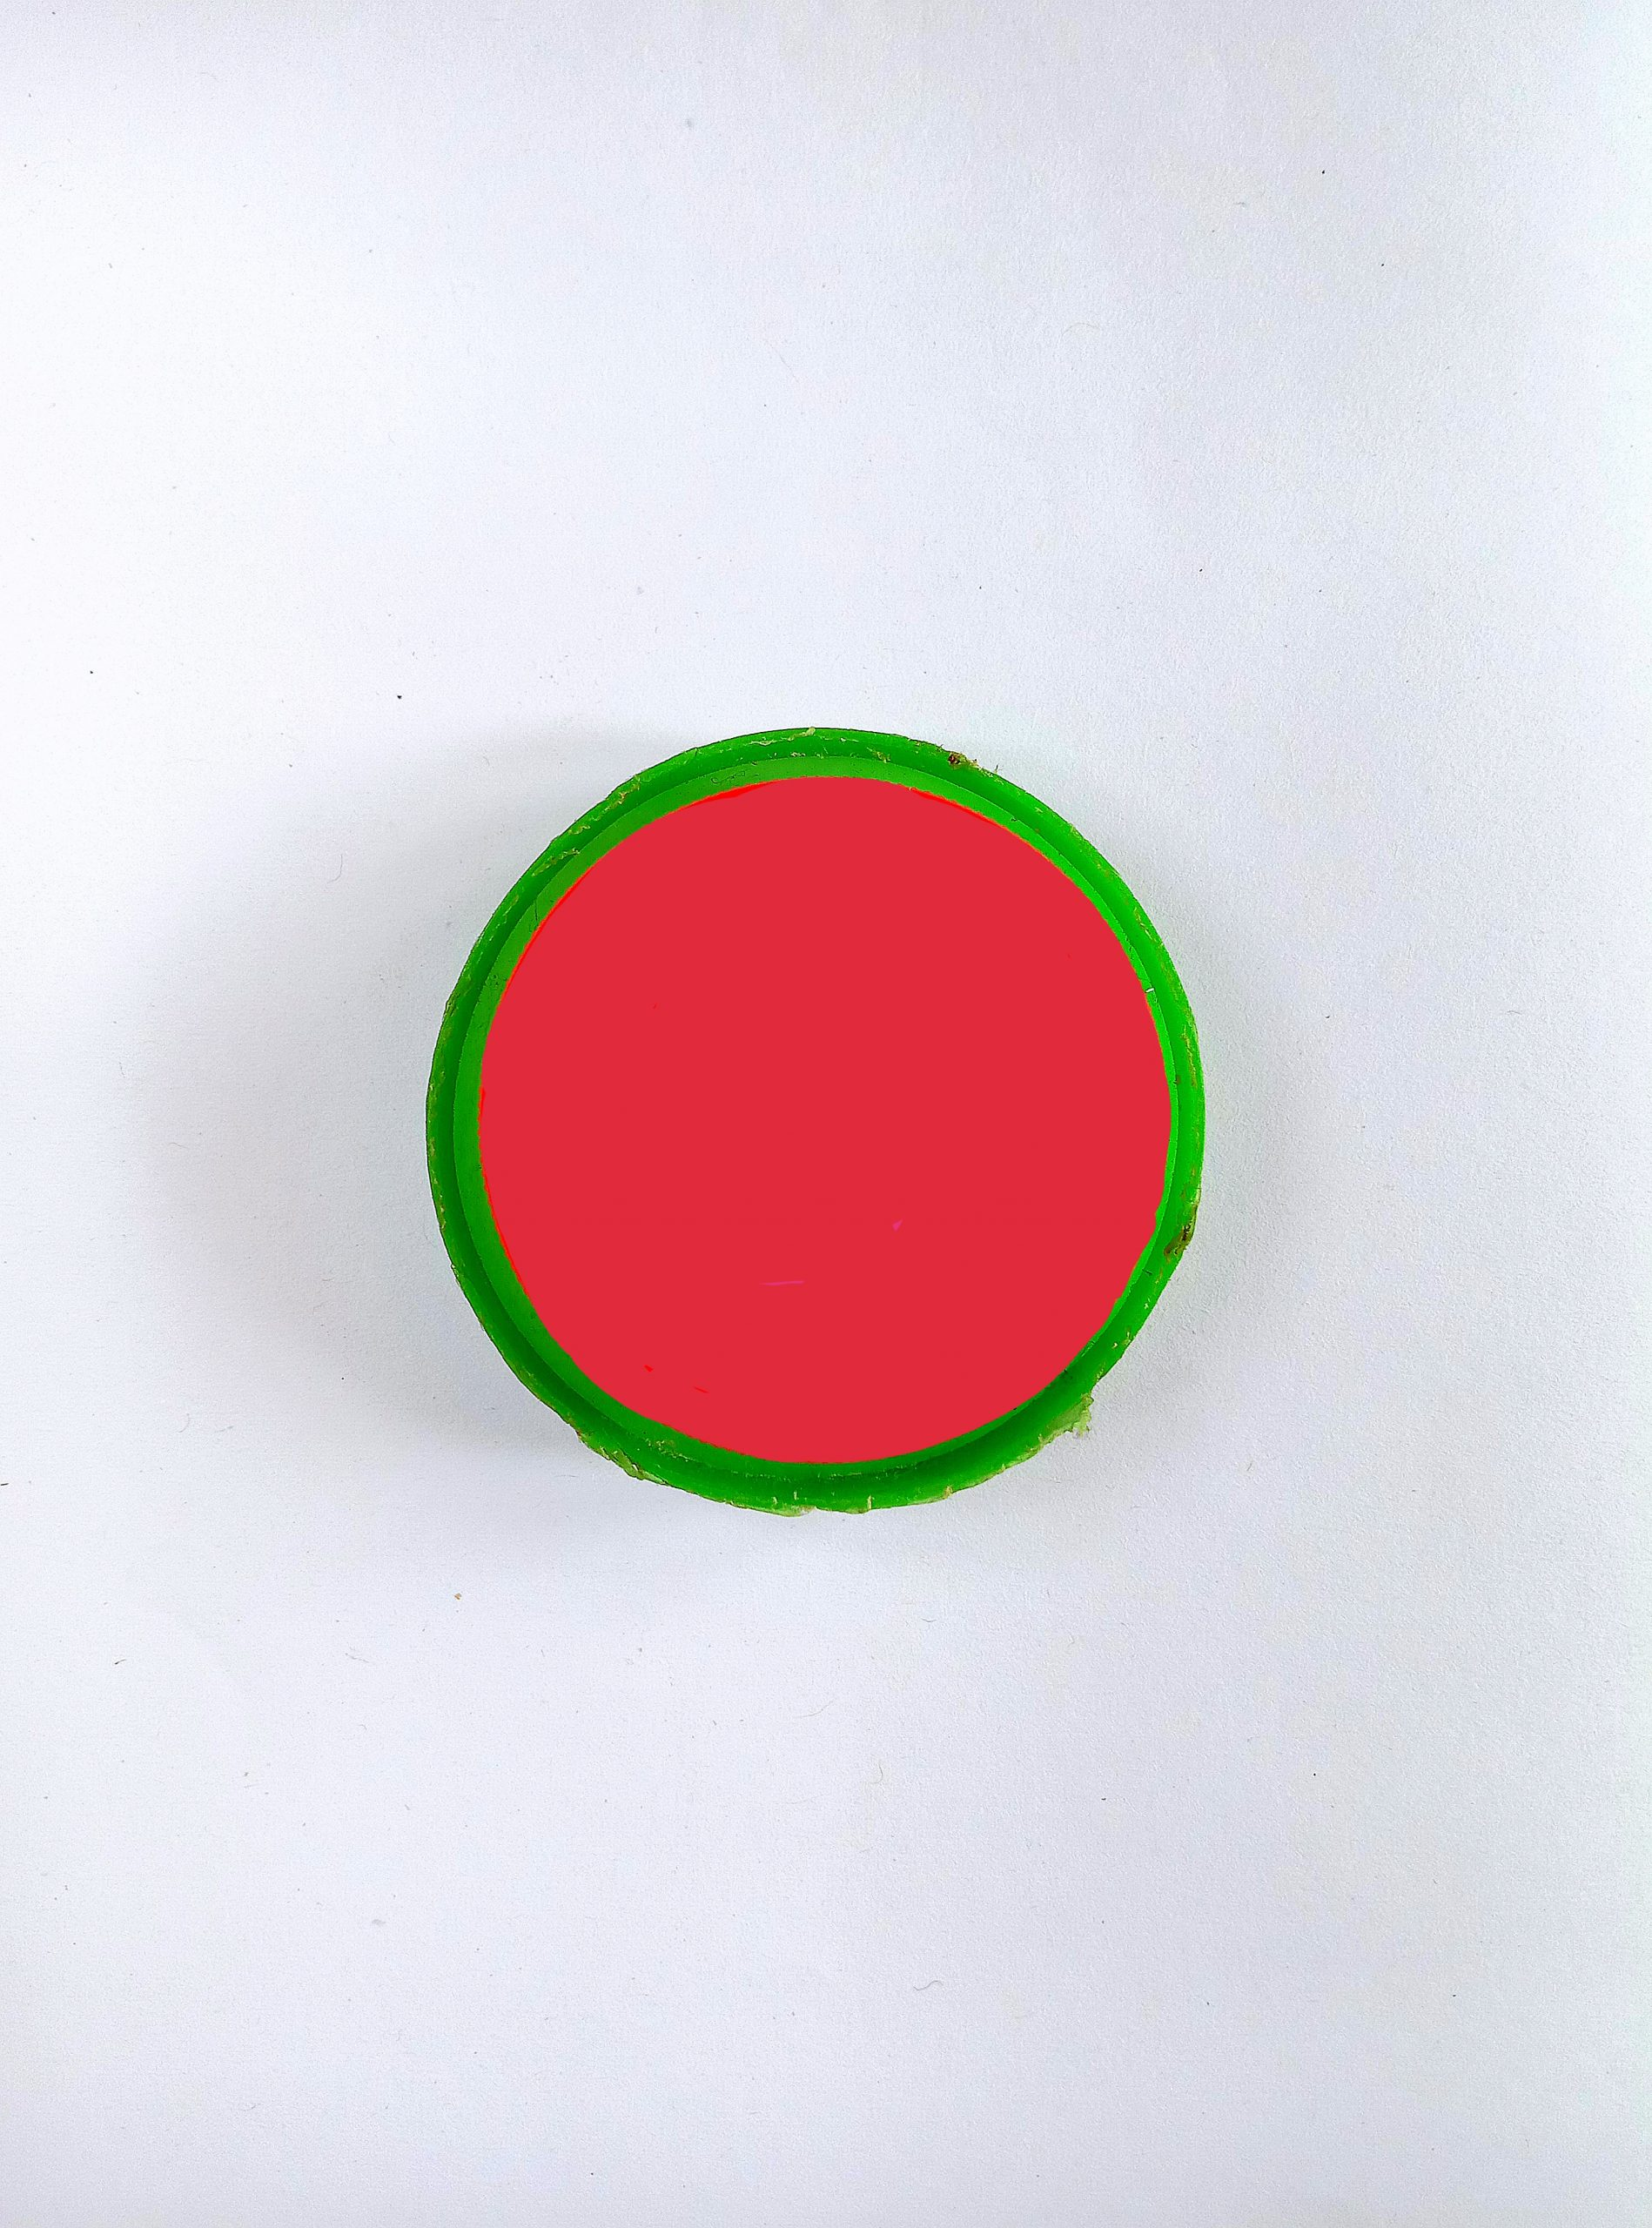 A red bowl